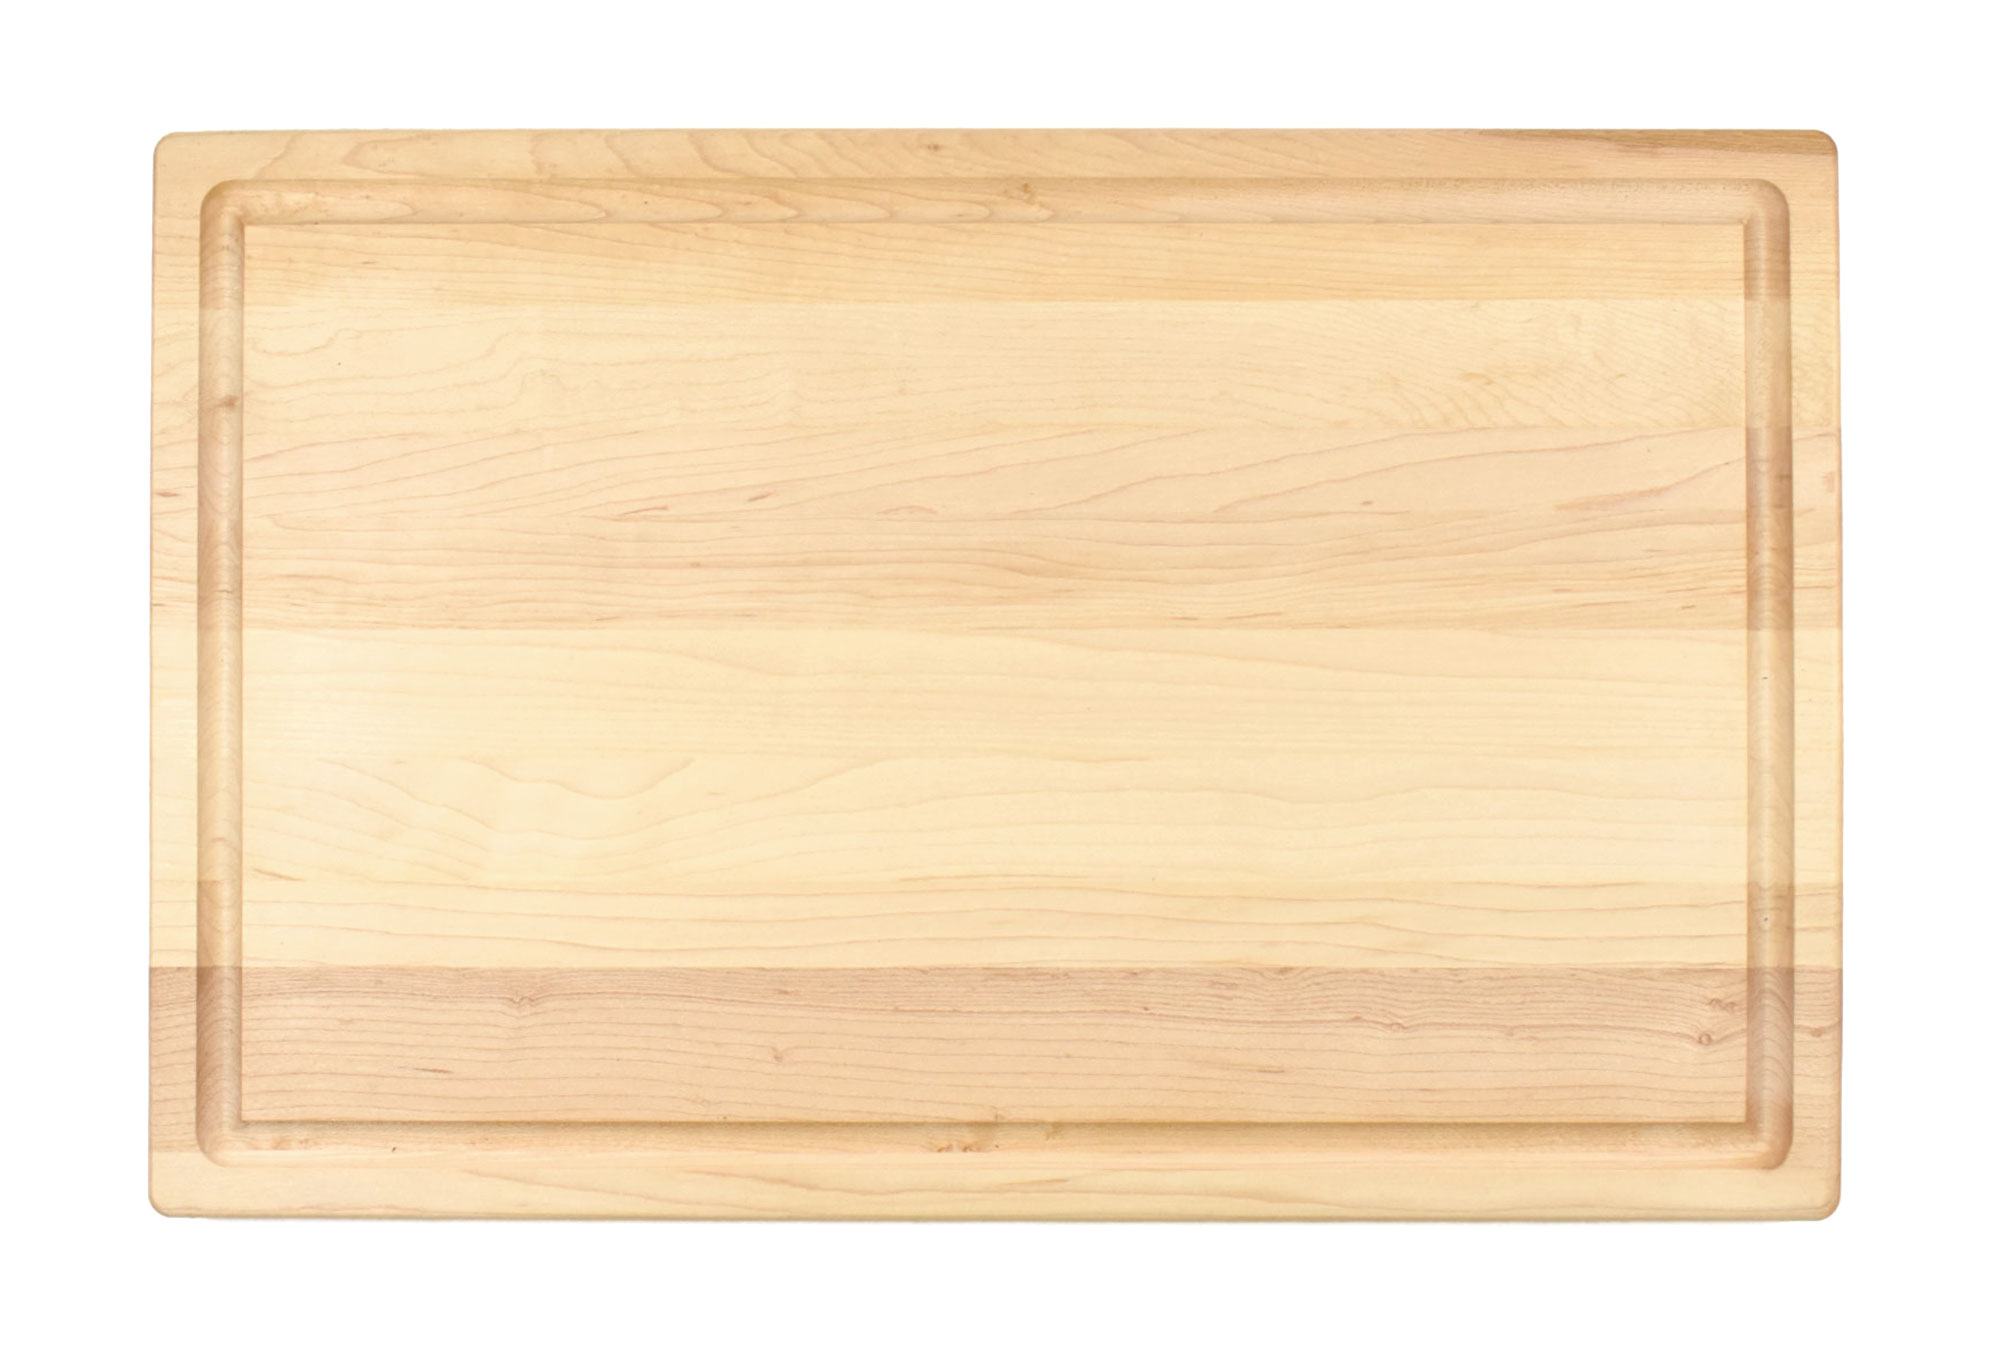 Butcher Block 1 Inch Thick